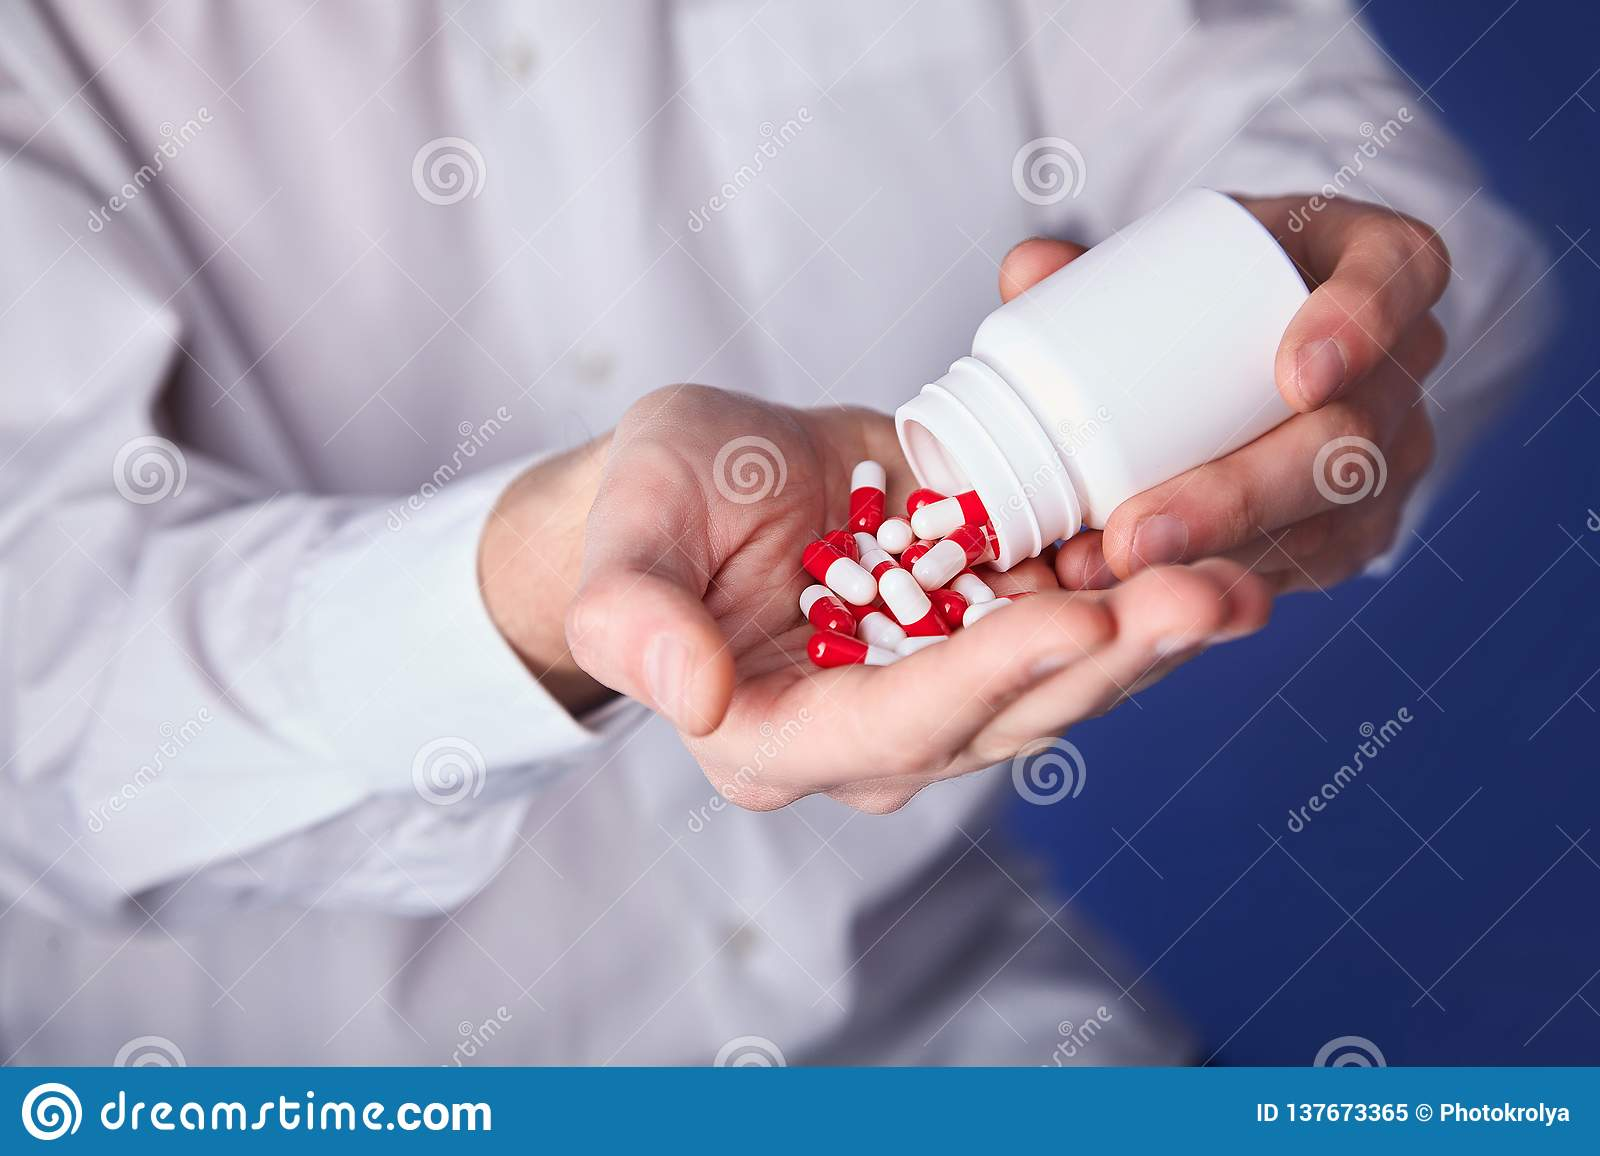 Man holds multi-colored pills in hands. Panacea, life save service, prescribe medicament, legal drug store, disease healing